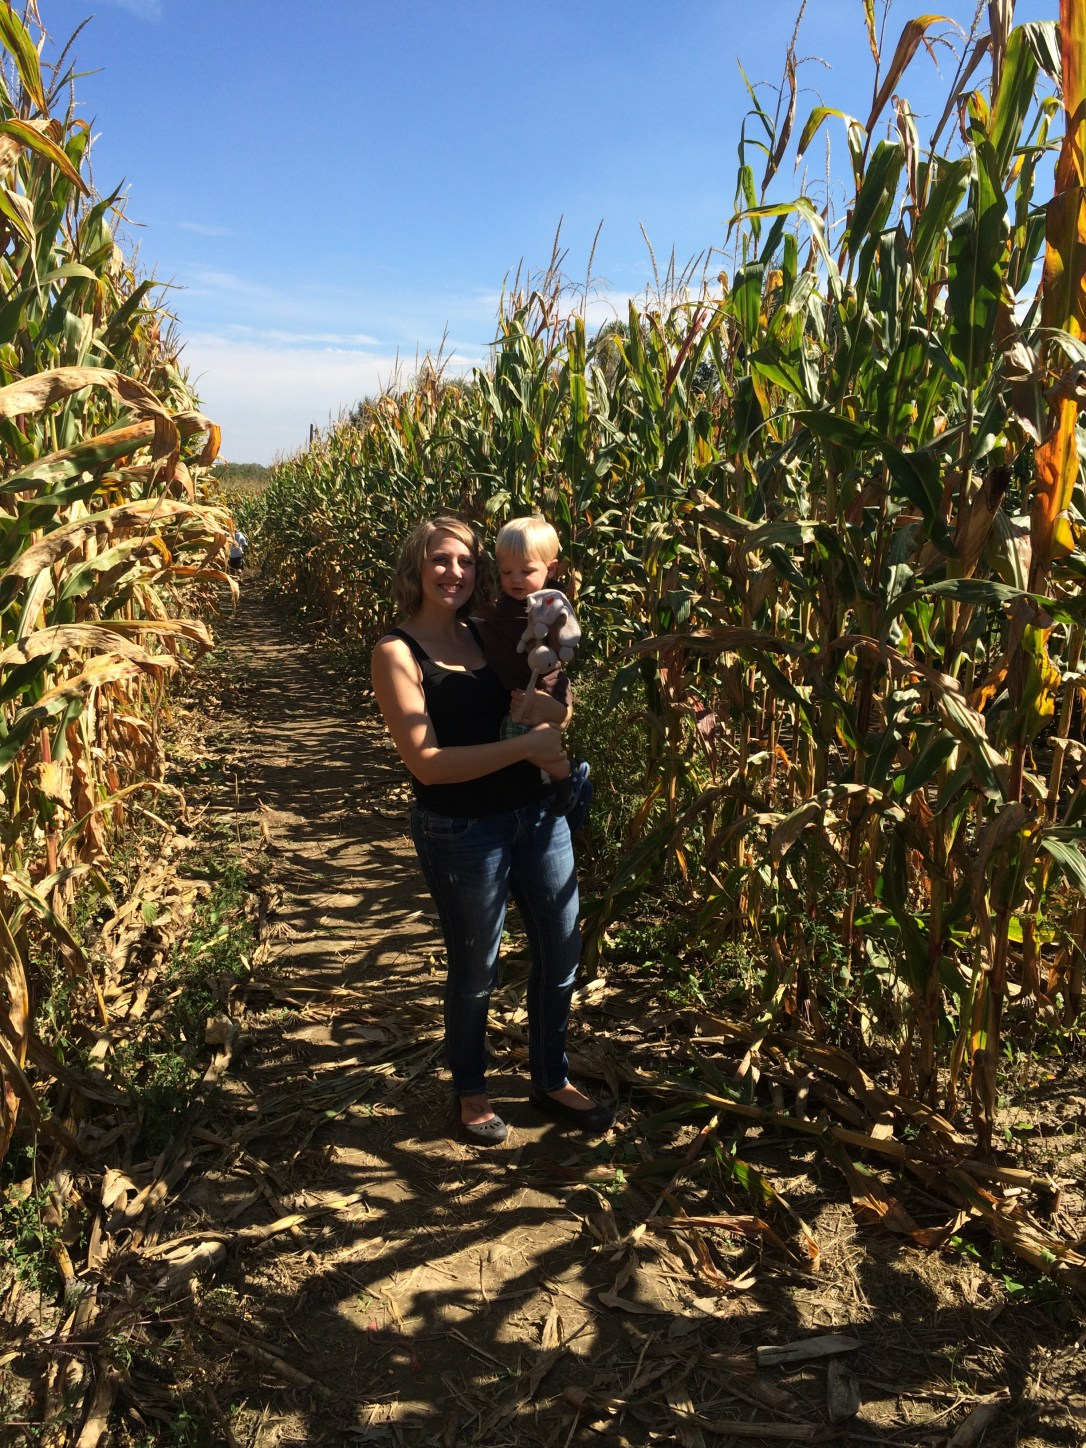 Audrey and Liam standing a field of corn